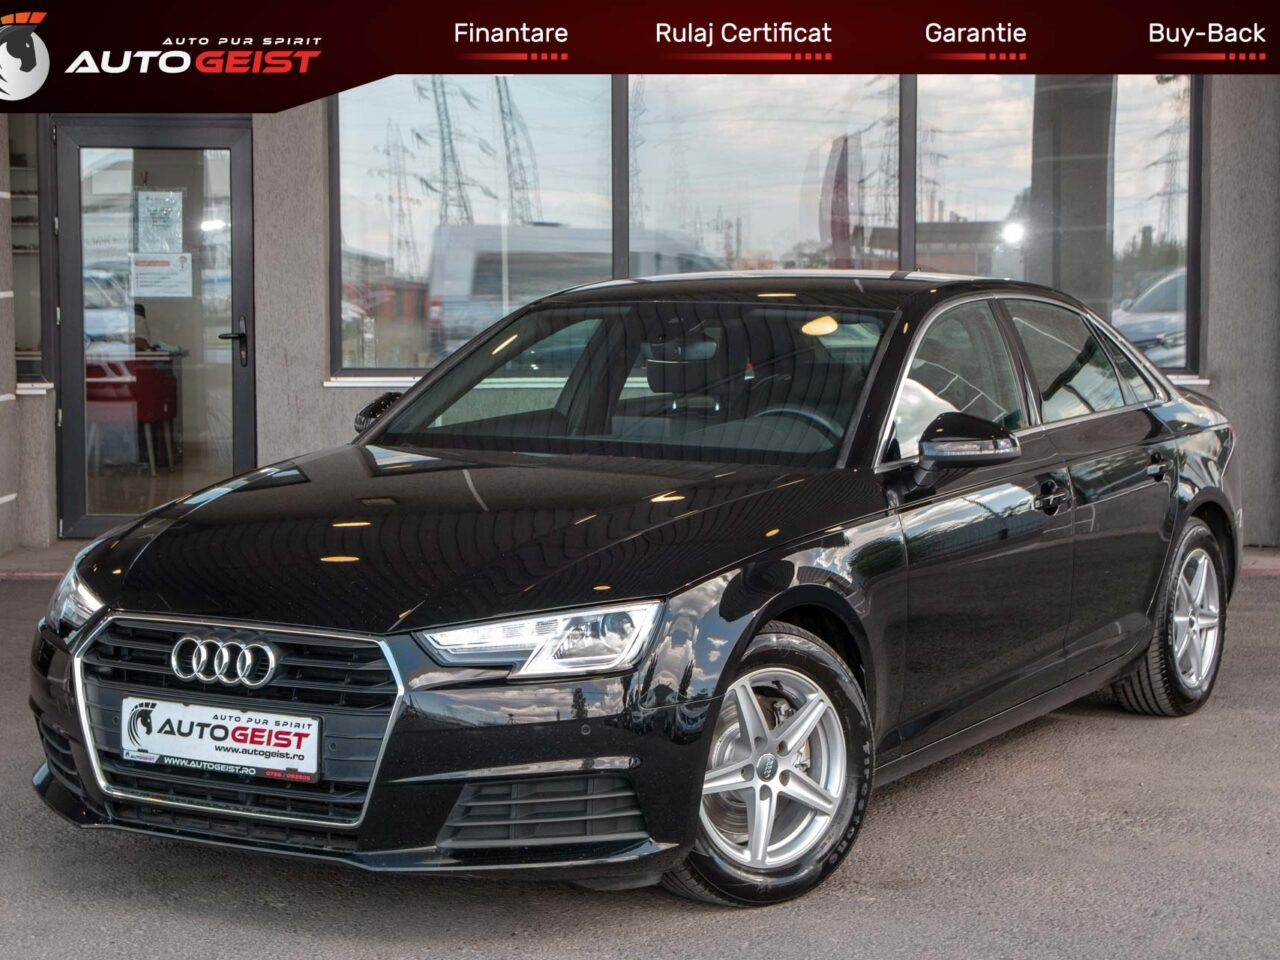 audi-a4-businessline-8398-2